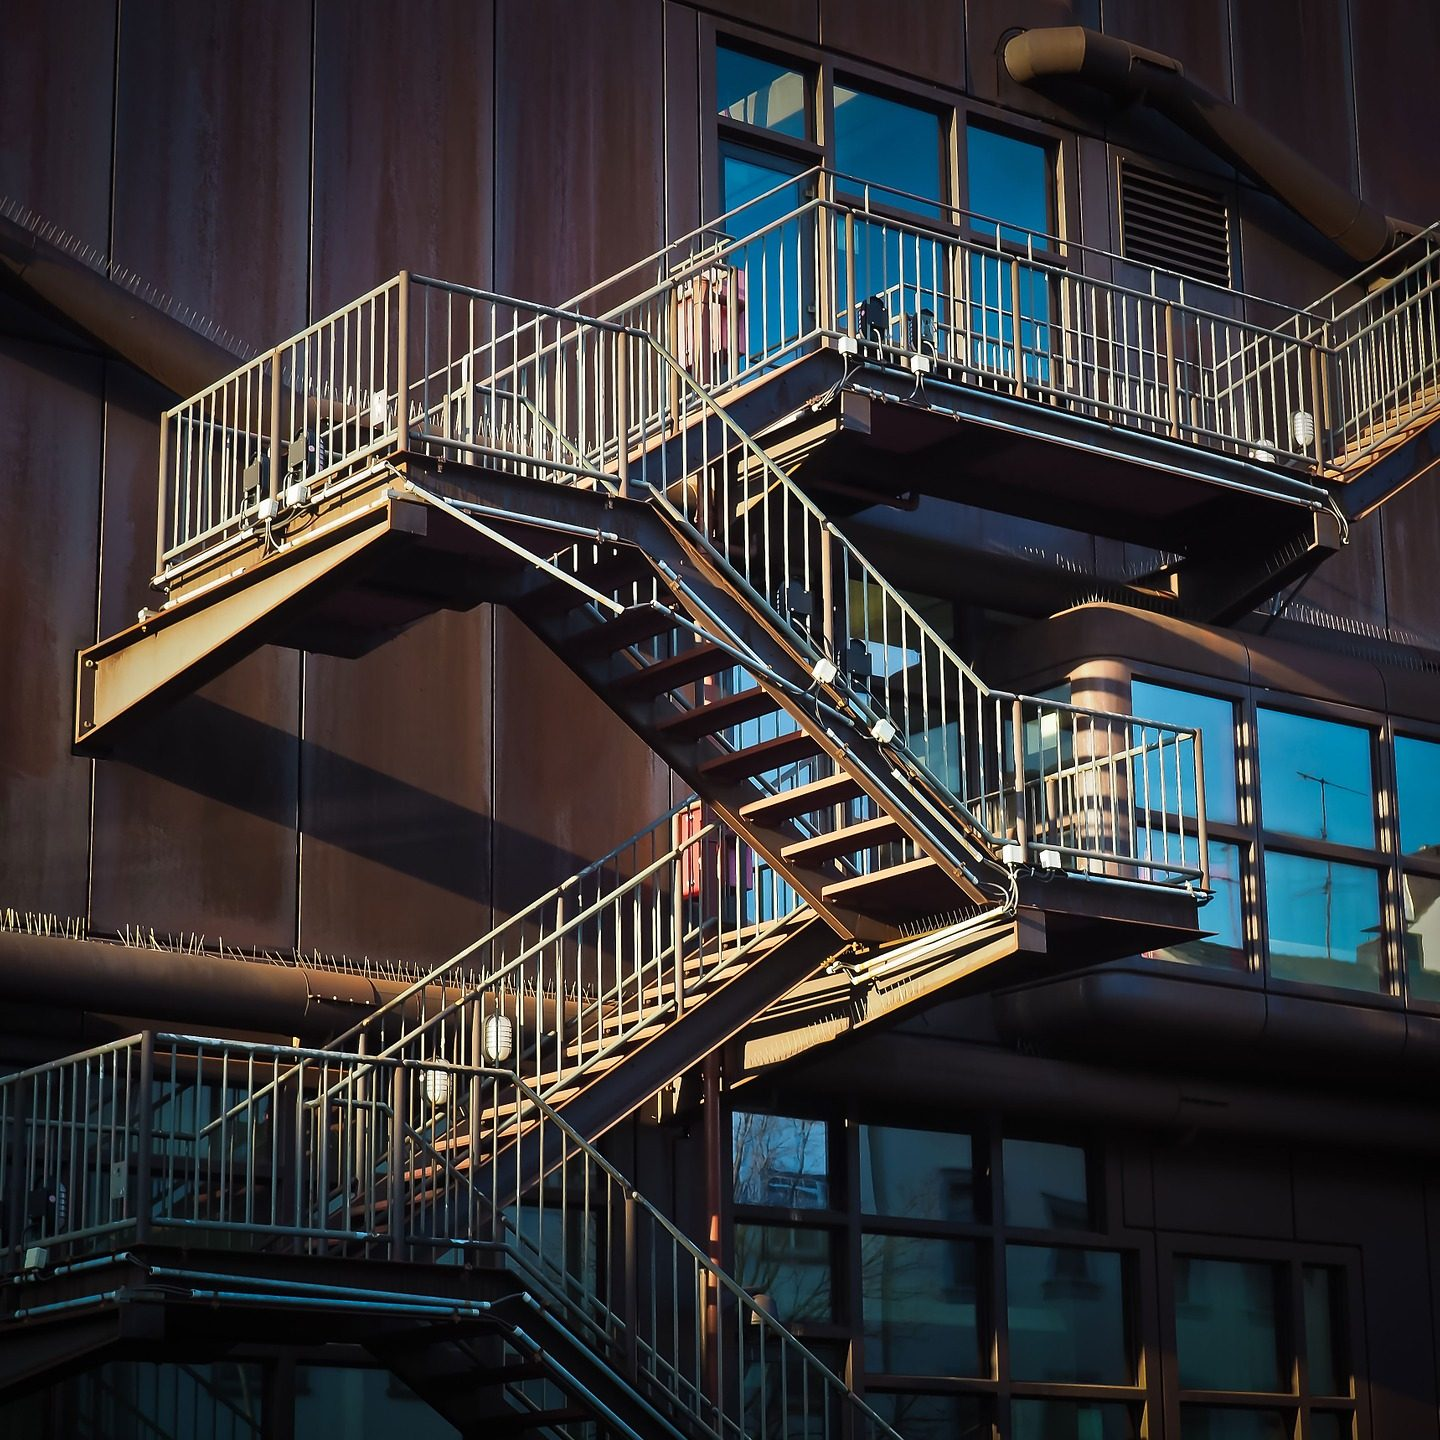 stairs-1229149_1920